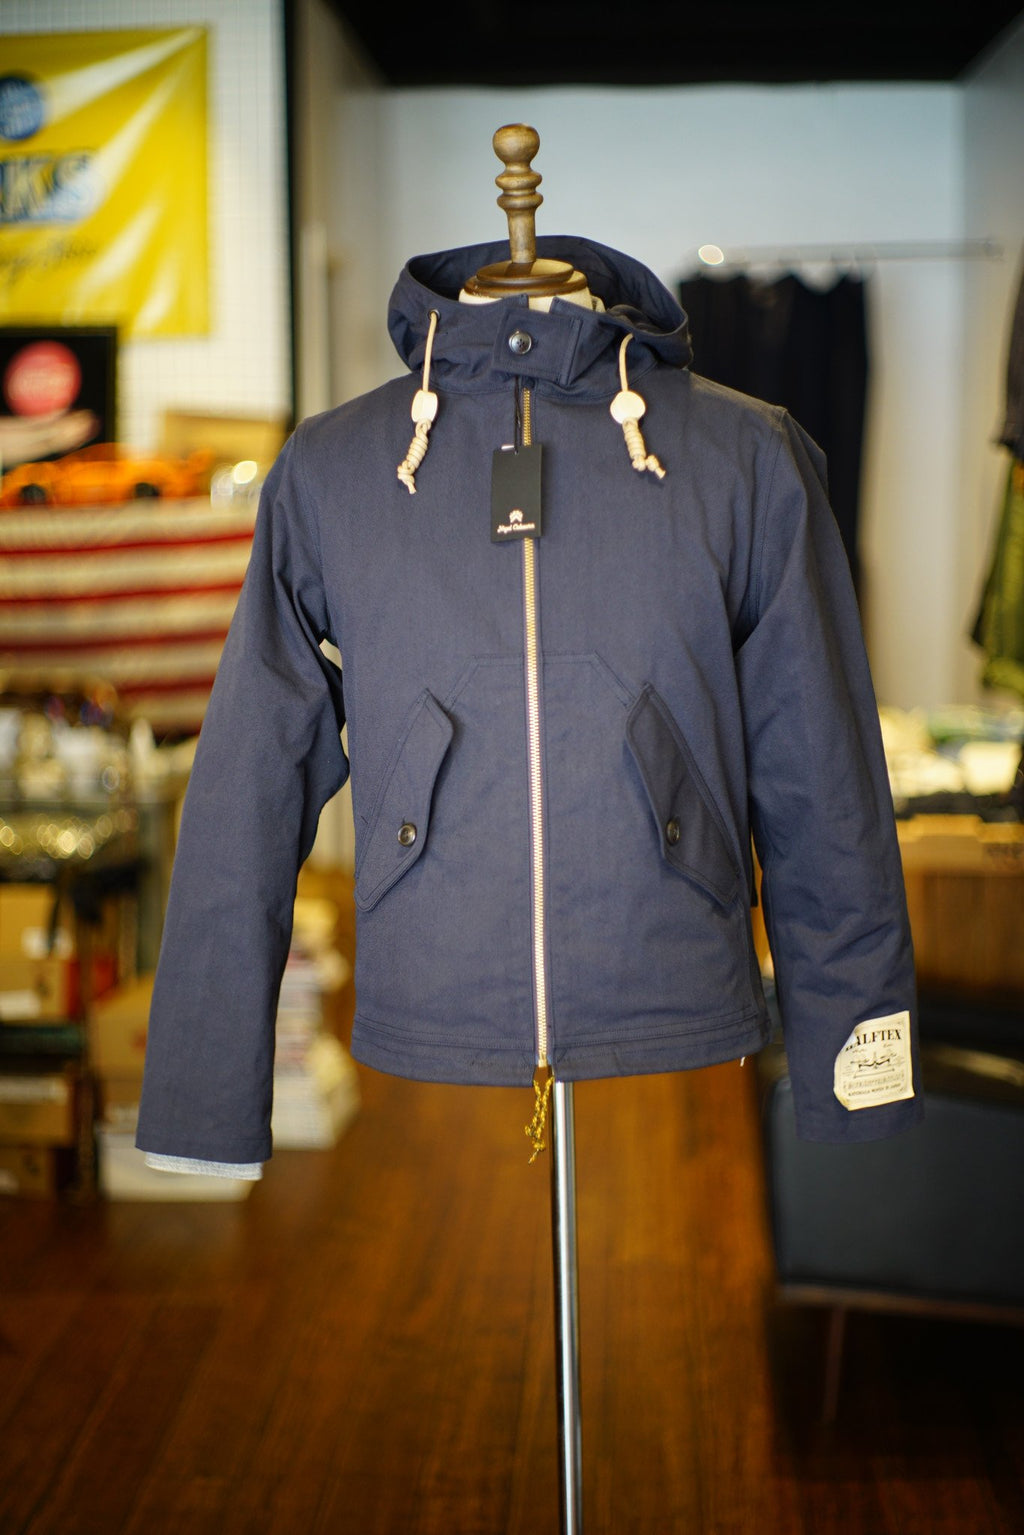 Nigel Cabourn Hooded Short Parka HALFTEX 15% Off